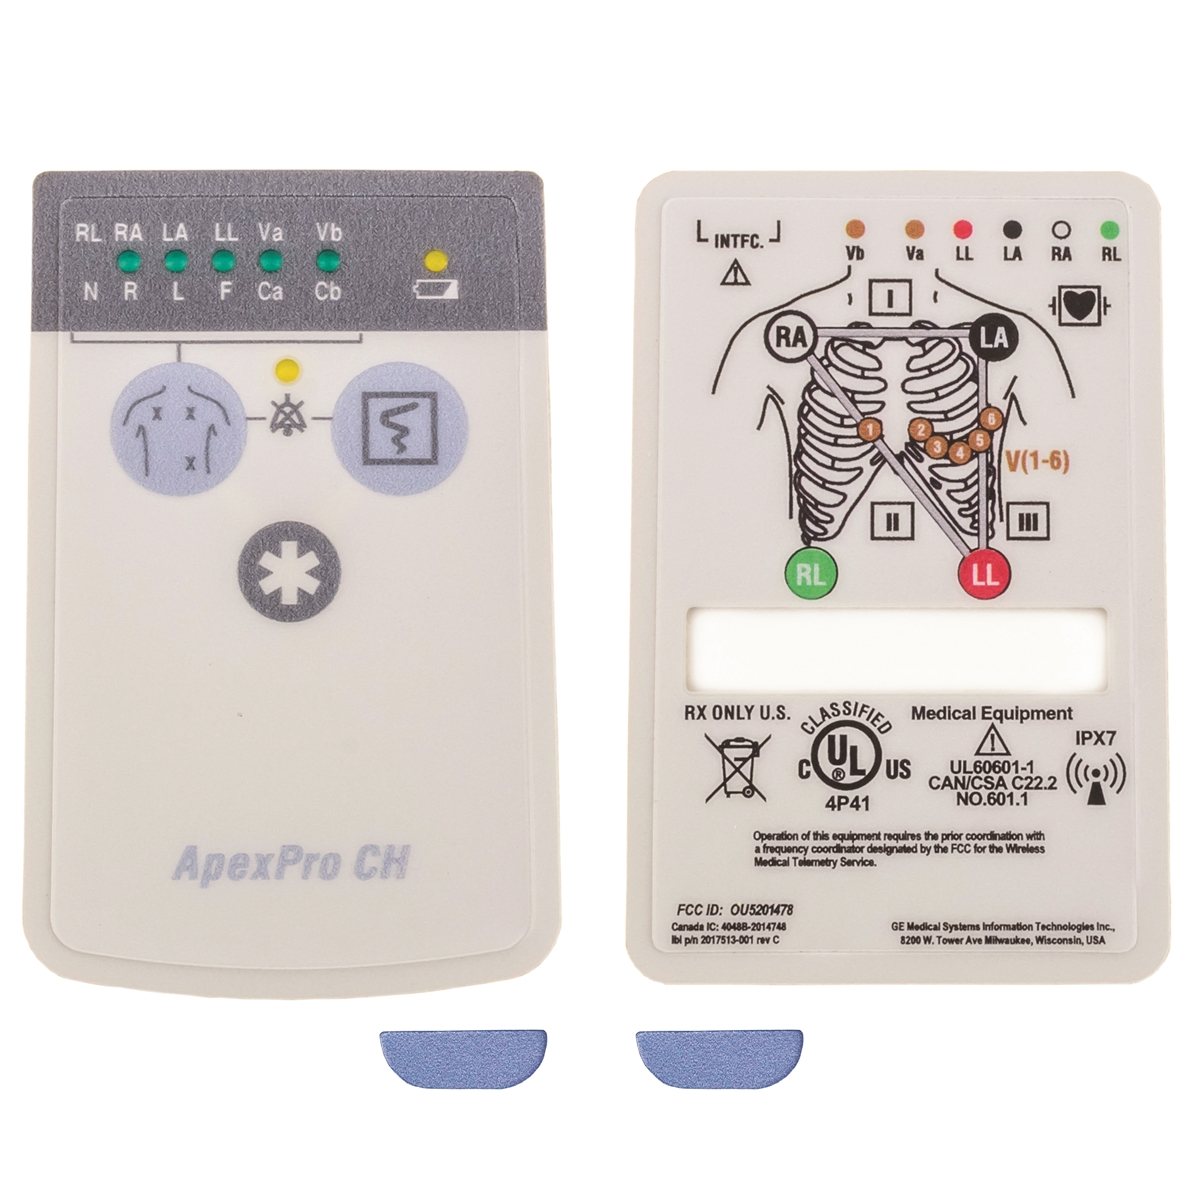 GE ApexPro CH Telemetry Transmitter Front & Rear Overlays & ECG Block Screw Covers